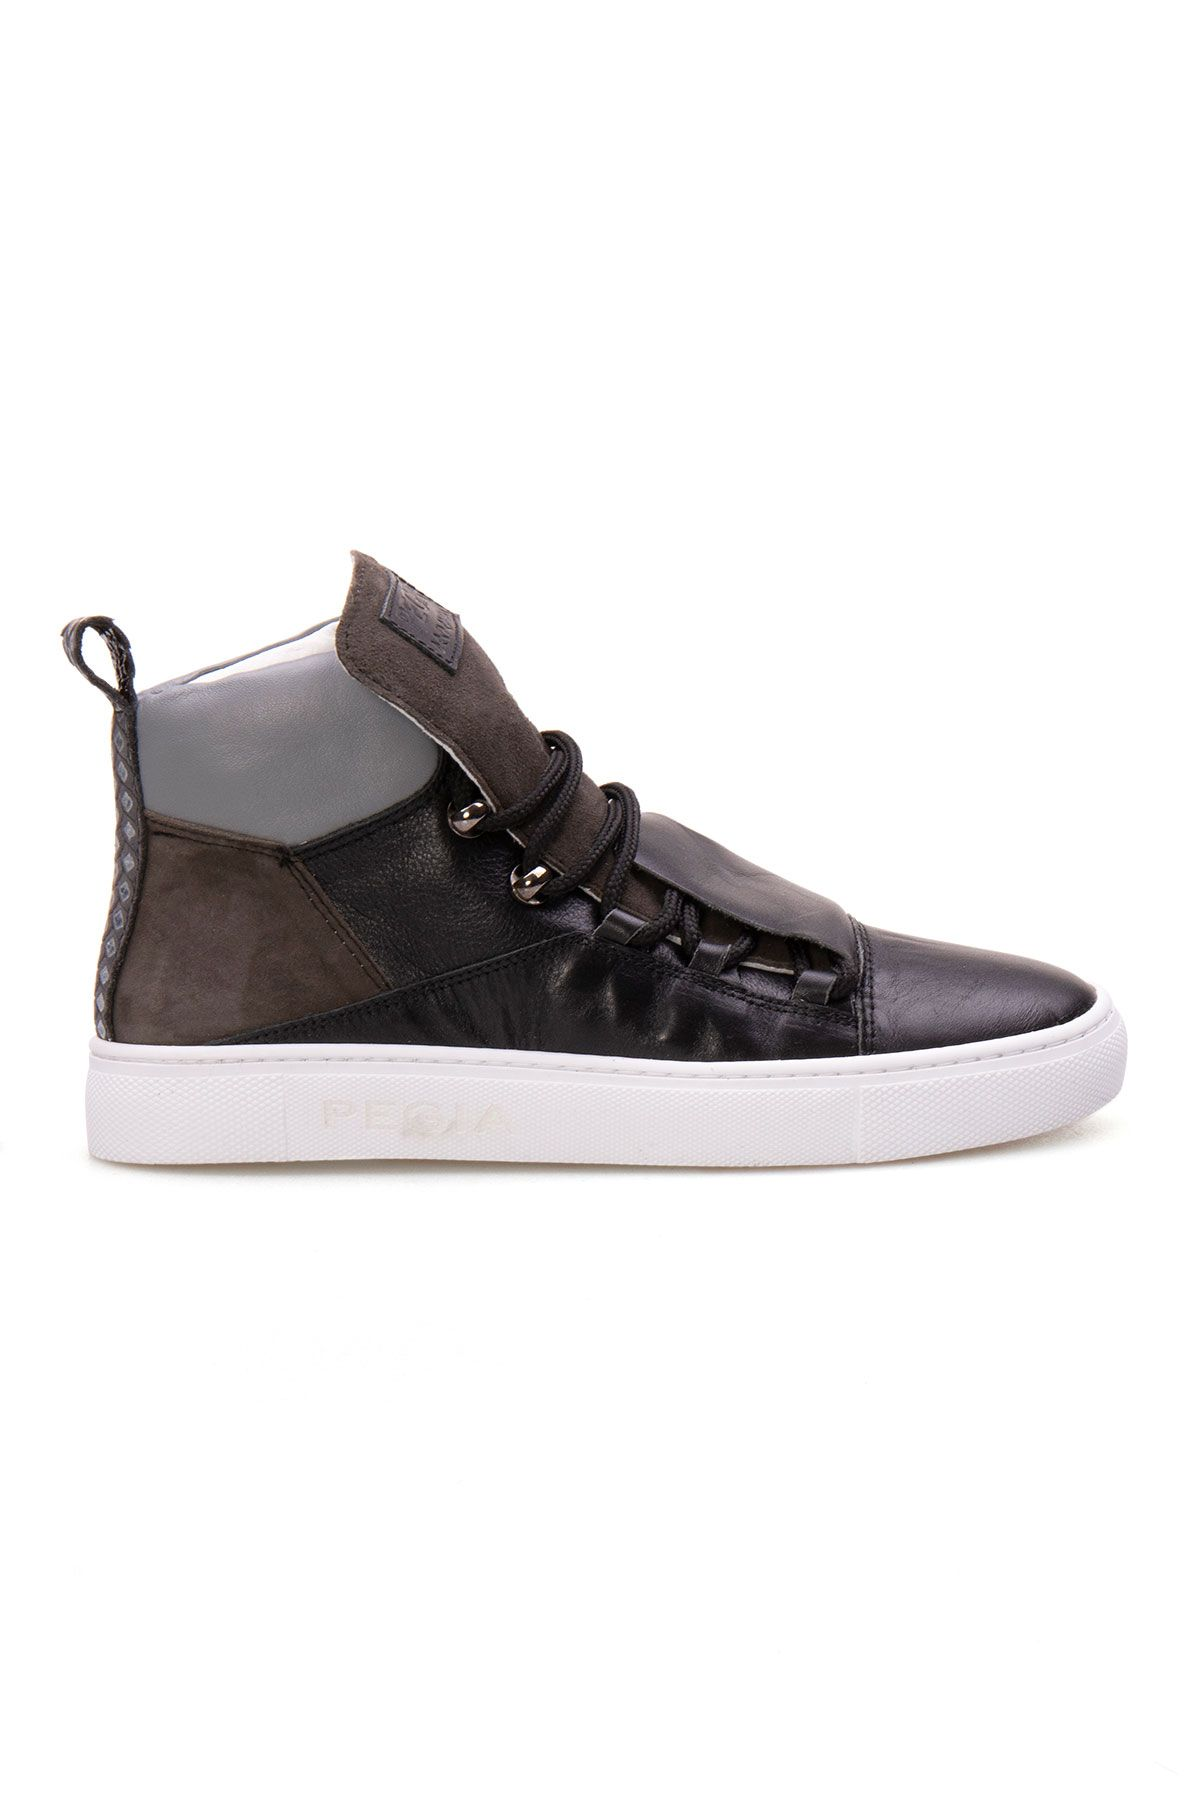 Pegia Genuine Leather Women's Sneaker LA1308 Black